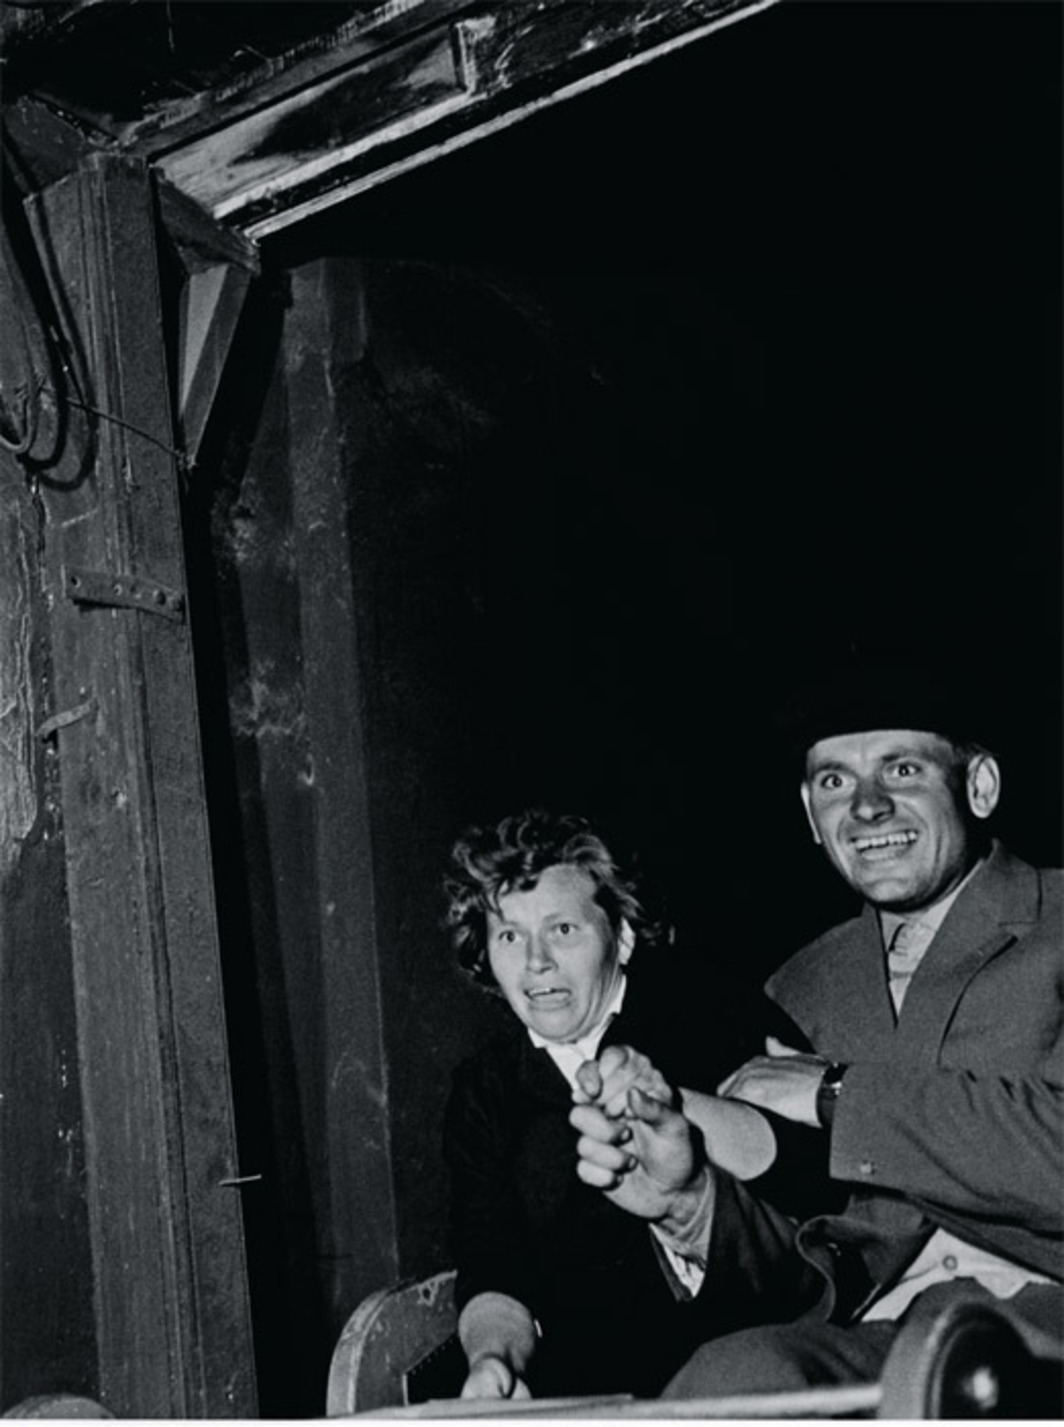 "Péter Nádas, In der Geisterbahn (On the Ghost Train), 1963, gelatin silver print, 9 x 7""."